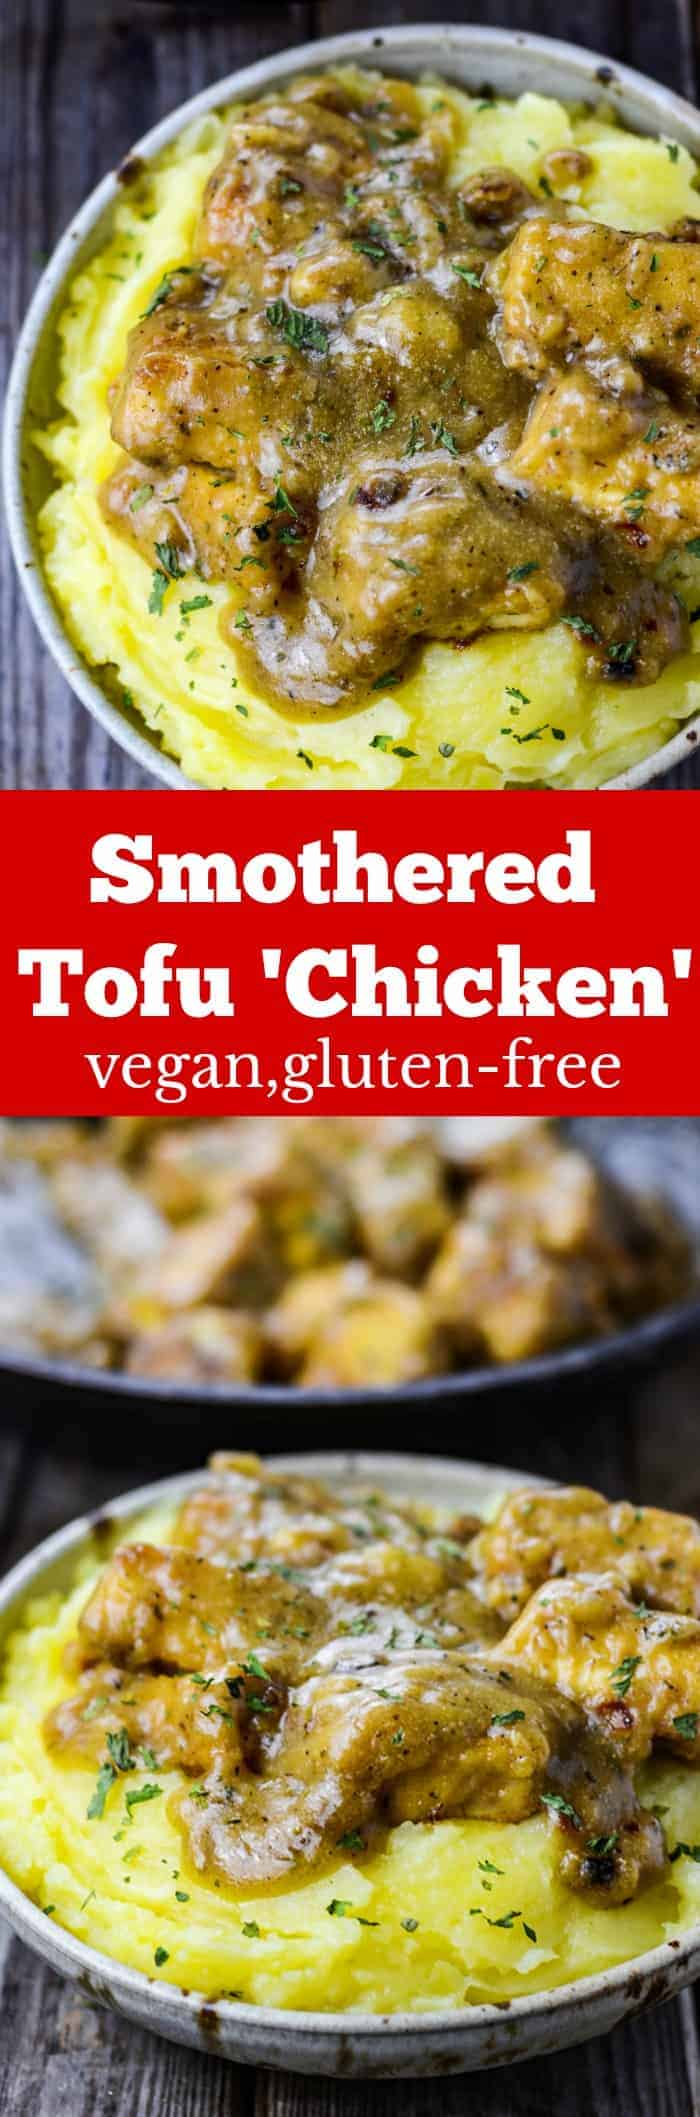 smothered-tofu-chicken